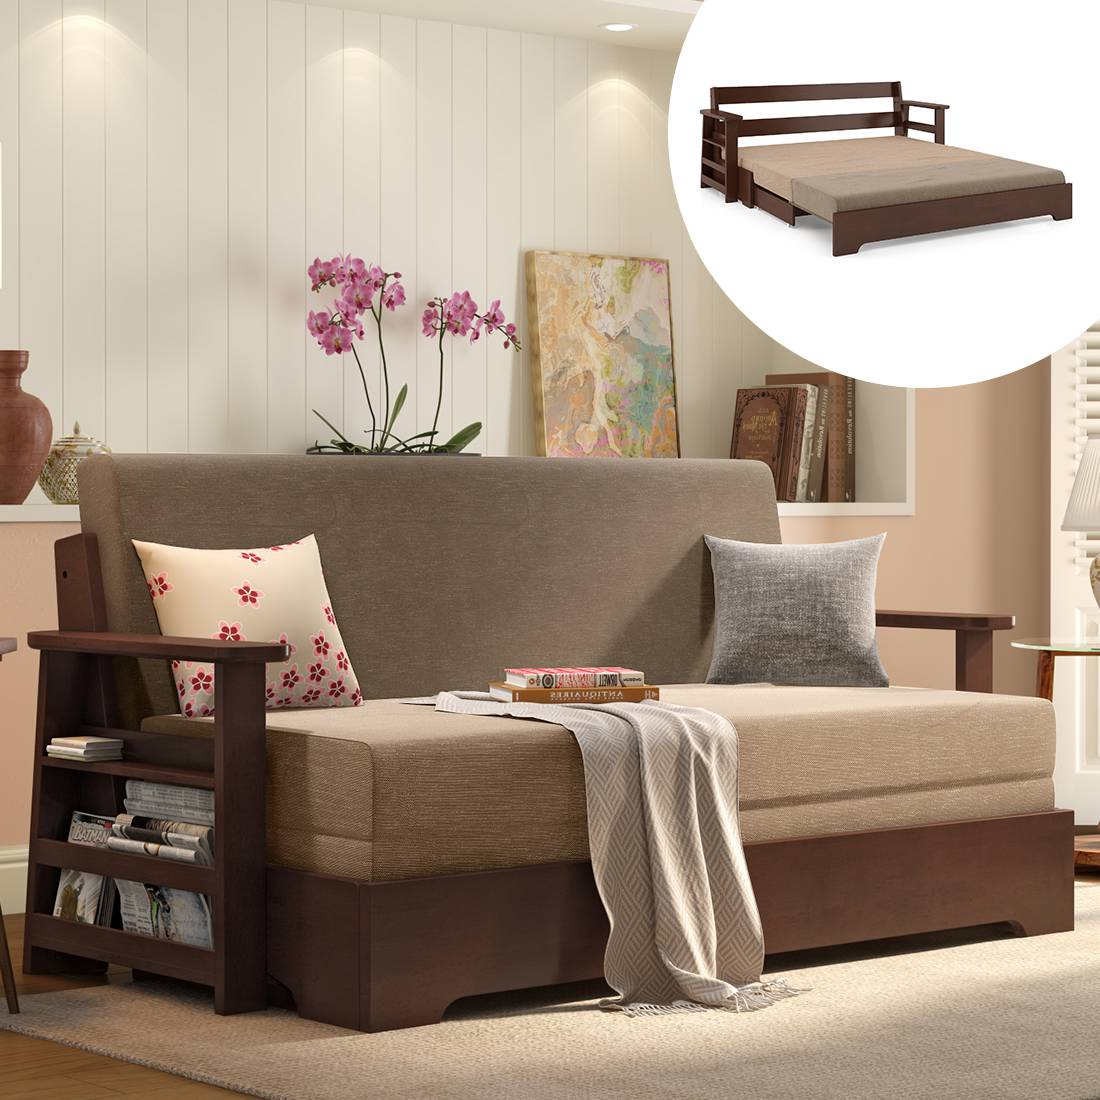 Sofa Cum Bed: Best Sofa Come Bed Designs Online at Best Prices